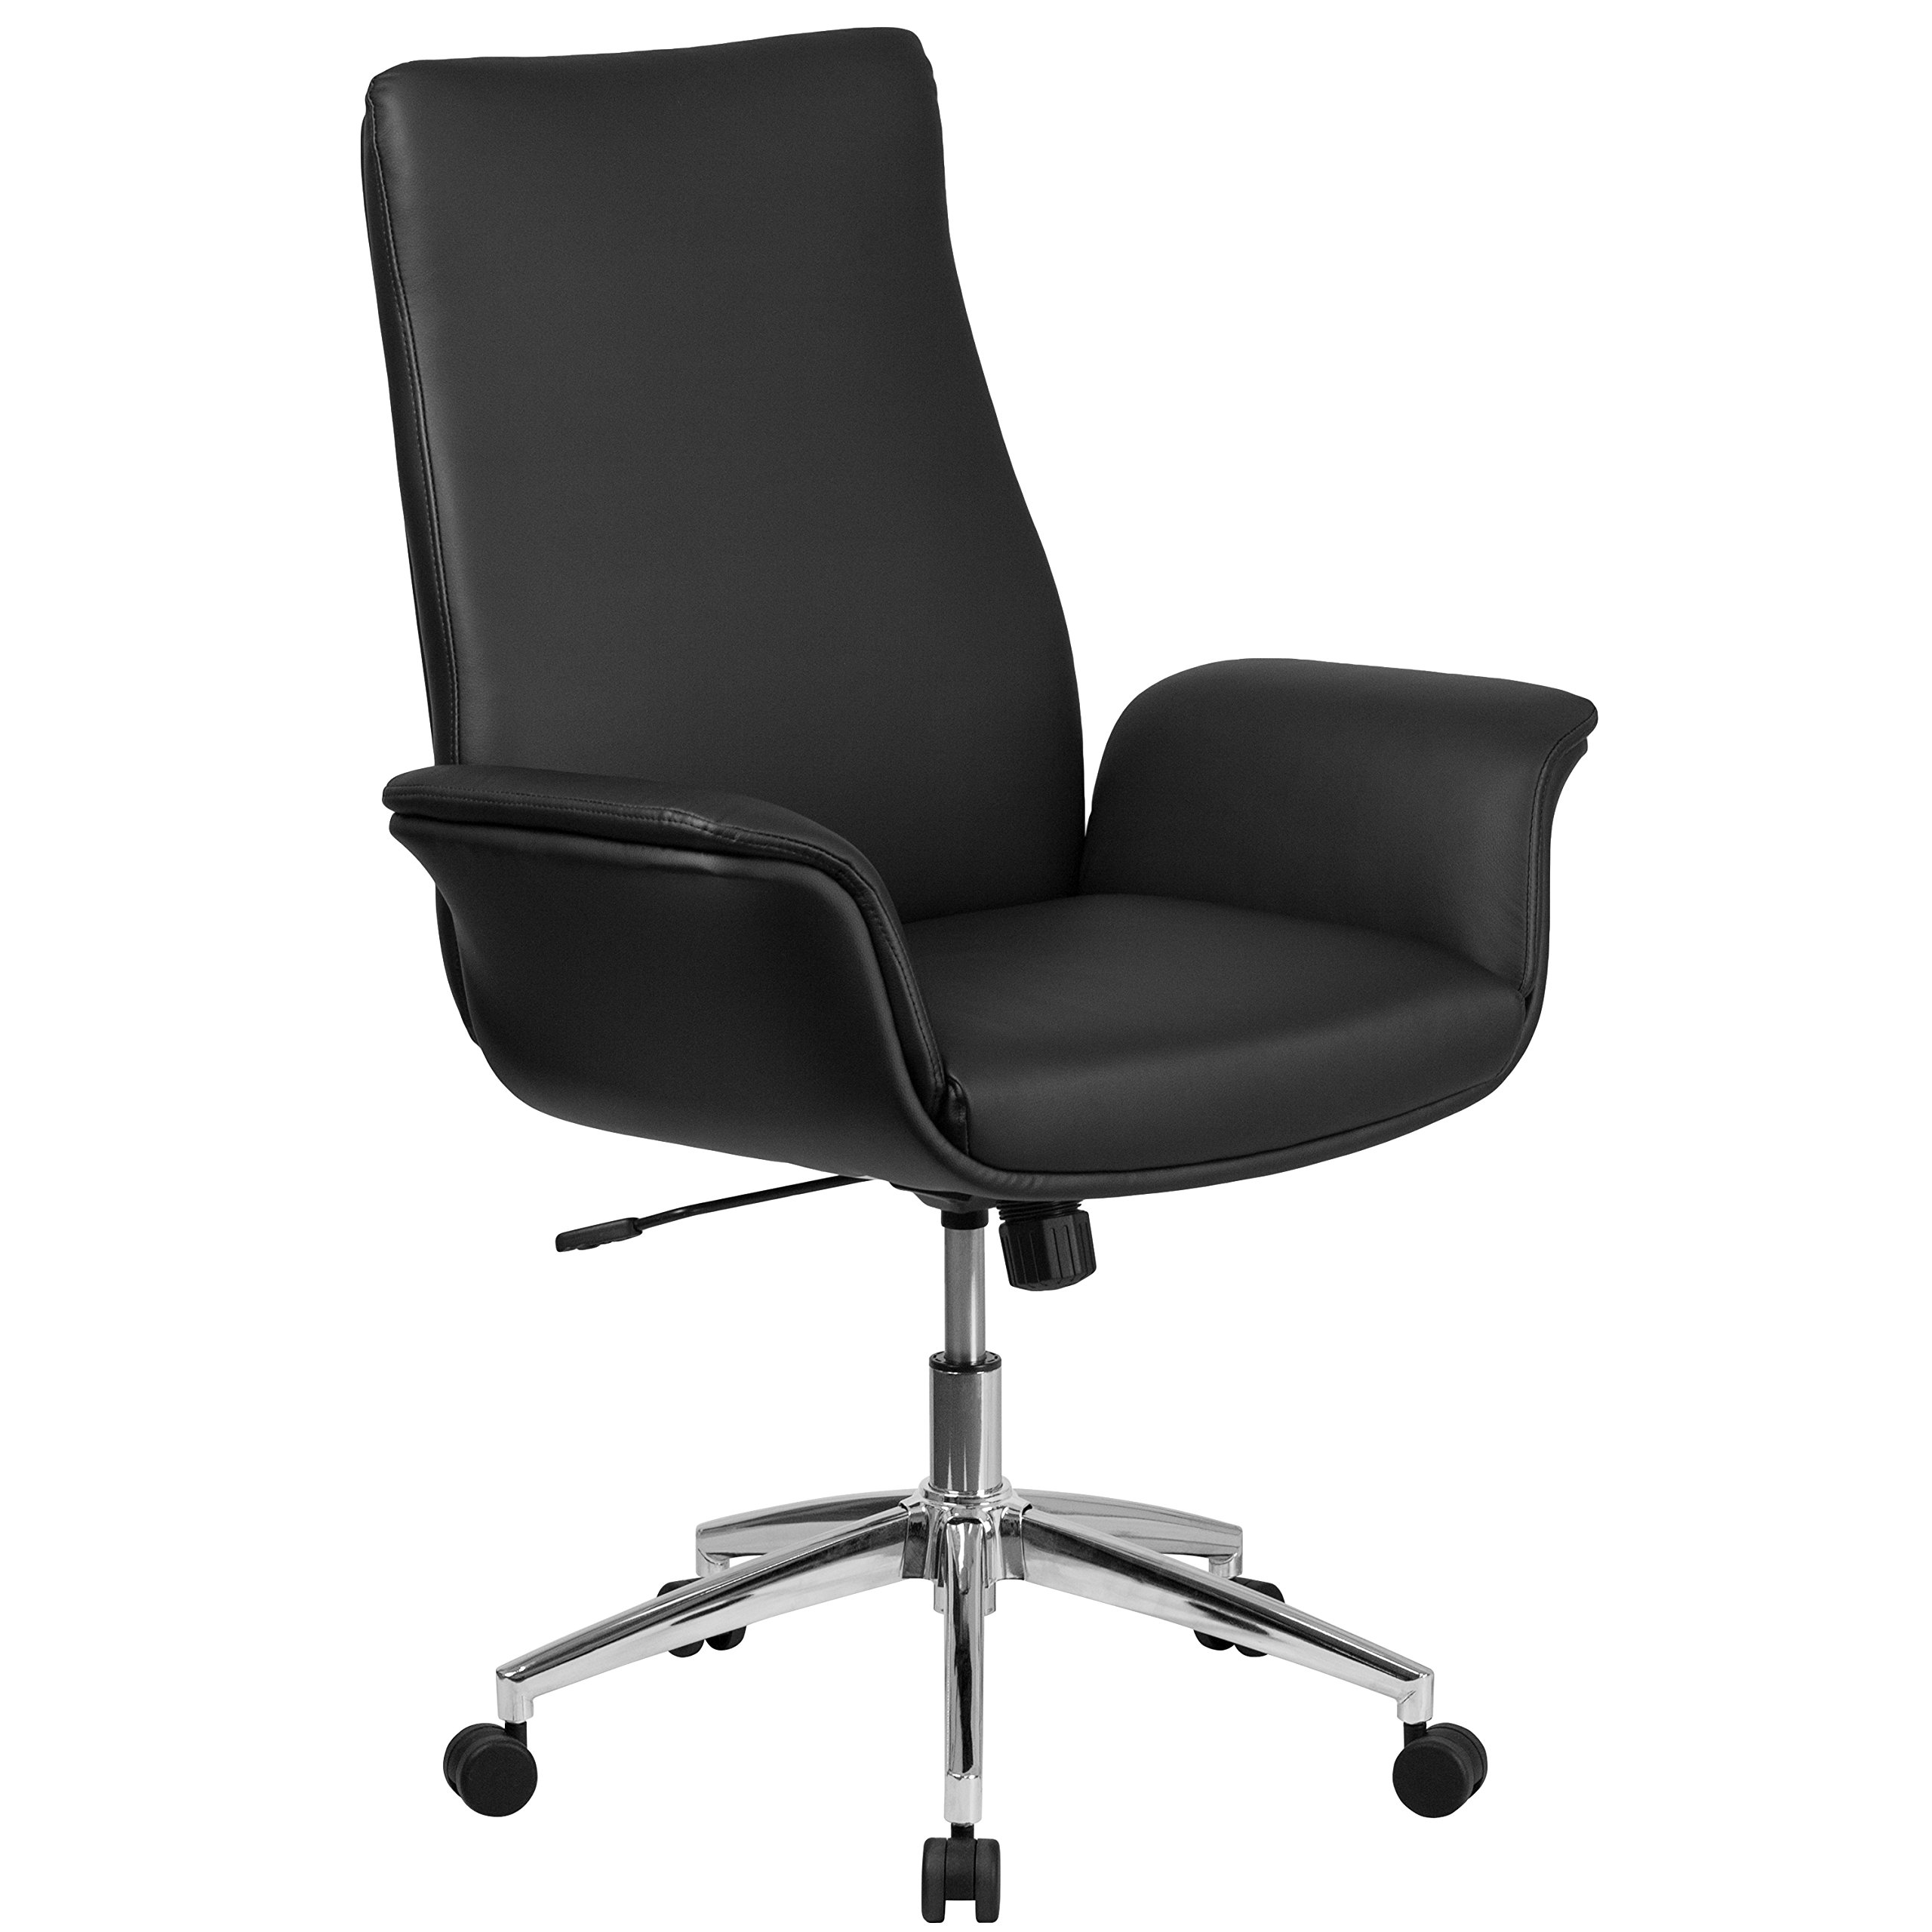 Flash Furniture Mid-Back Black Leather Executive Swivel Office Chair with Flared Arms by Flash Furniture